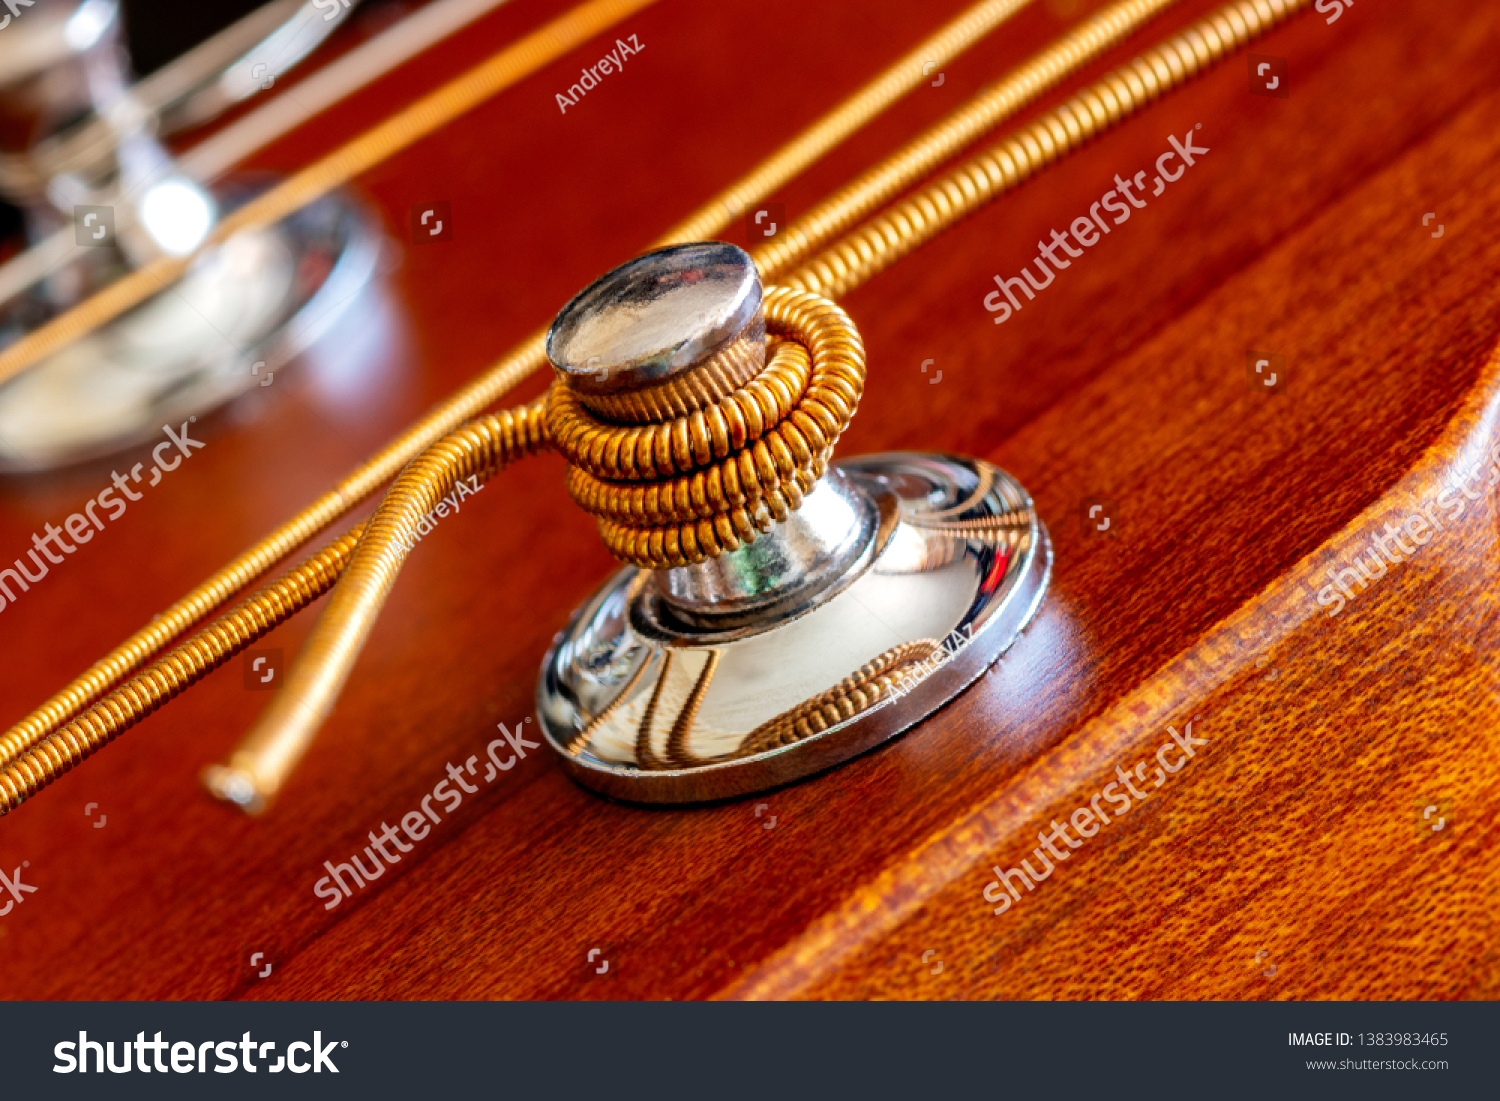 Fastening of a string on an acoustic guitar. Macro shooting #1383983465